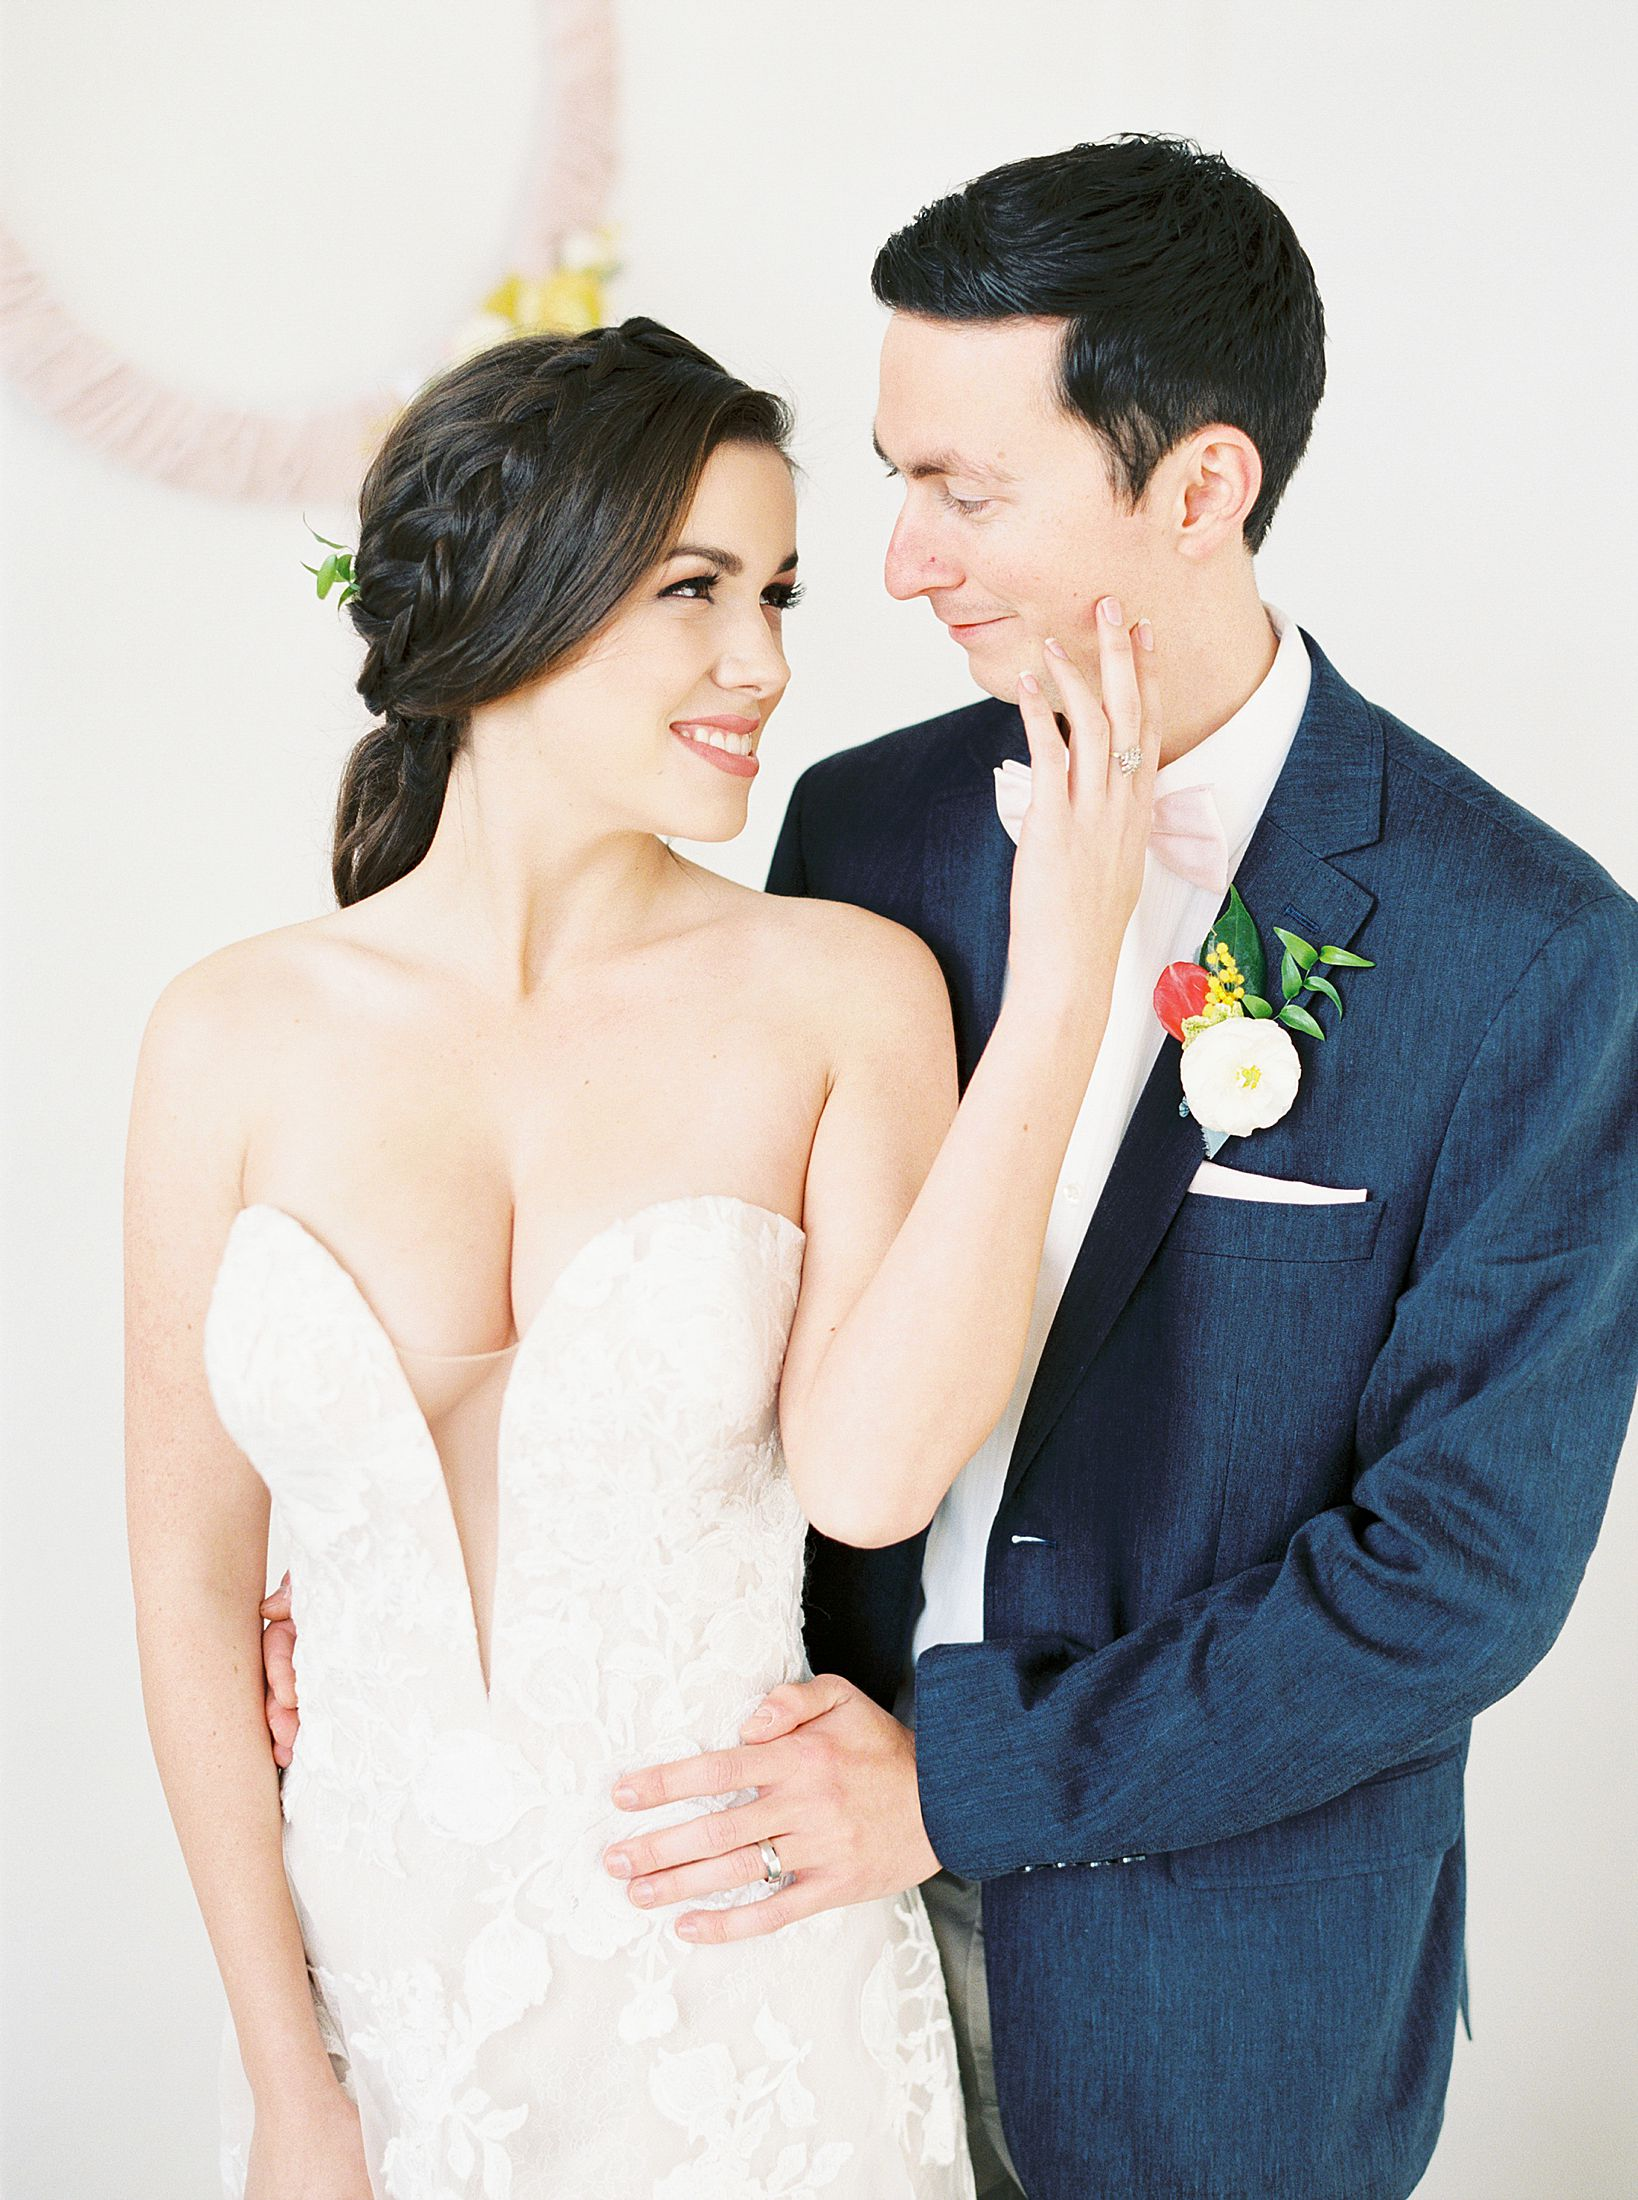 Bay Area Spring Wedding Inspiration - Ashley Baumgartner - Inspired By This - Party Crush Studio and Lens of Lenox Videography - Bay Area Wedding Photography_0016.jpg